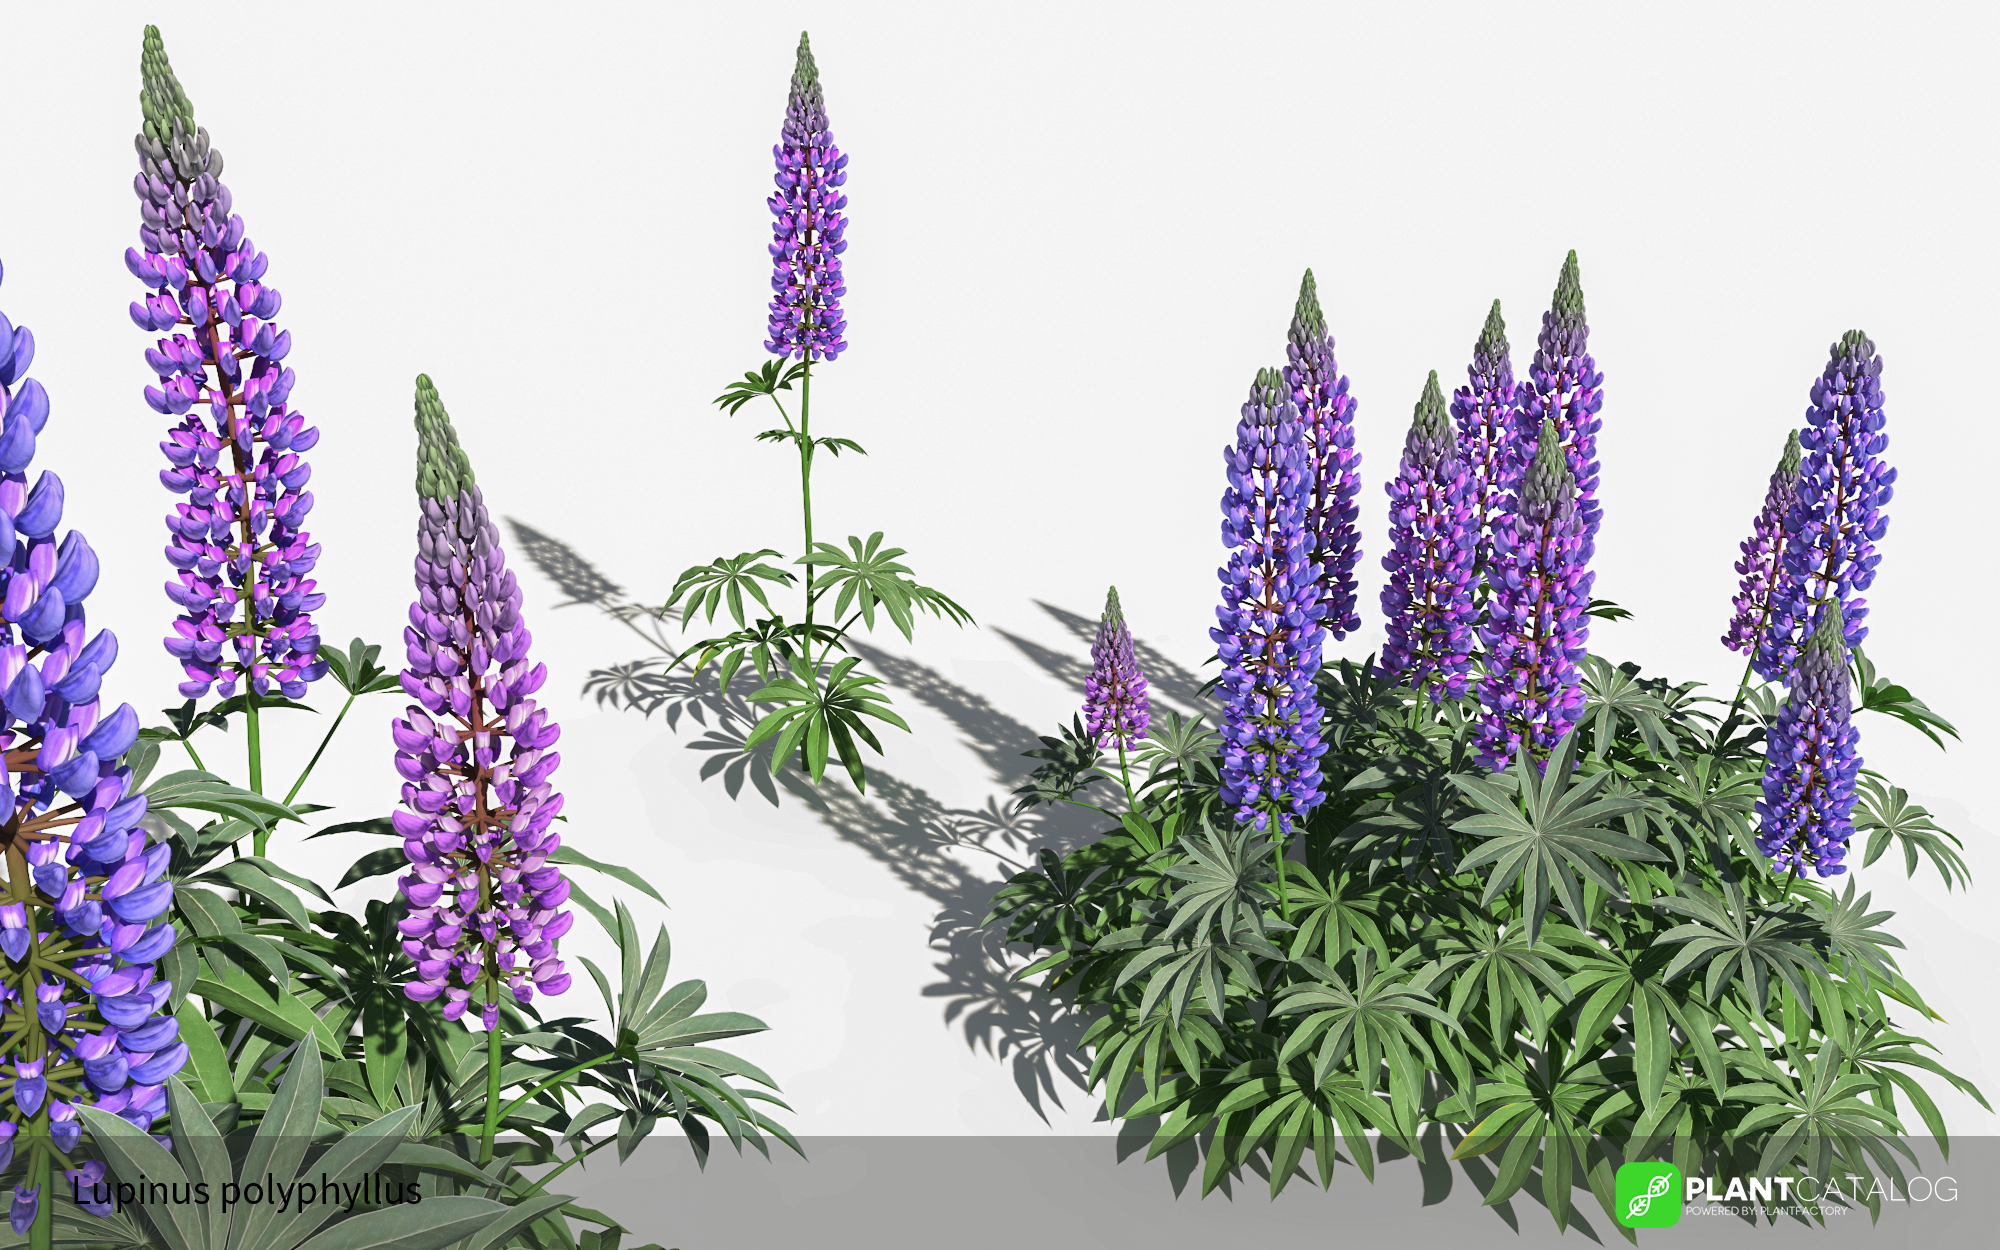 3D model of the Large-leaved lupine - Lupinus polyphyllus - from the PlantCatalog, rendered in VUE